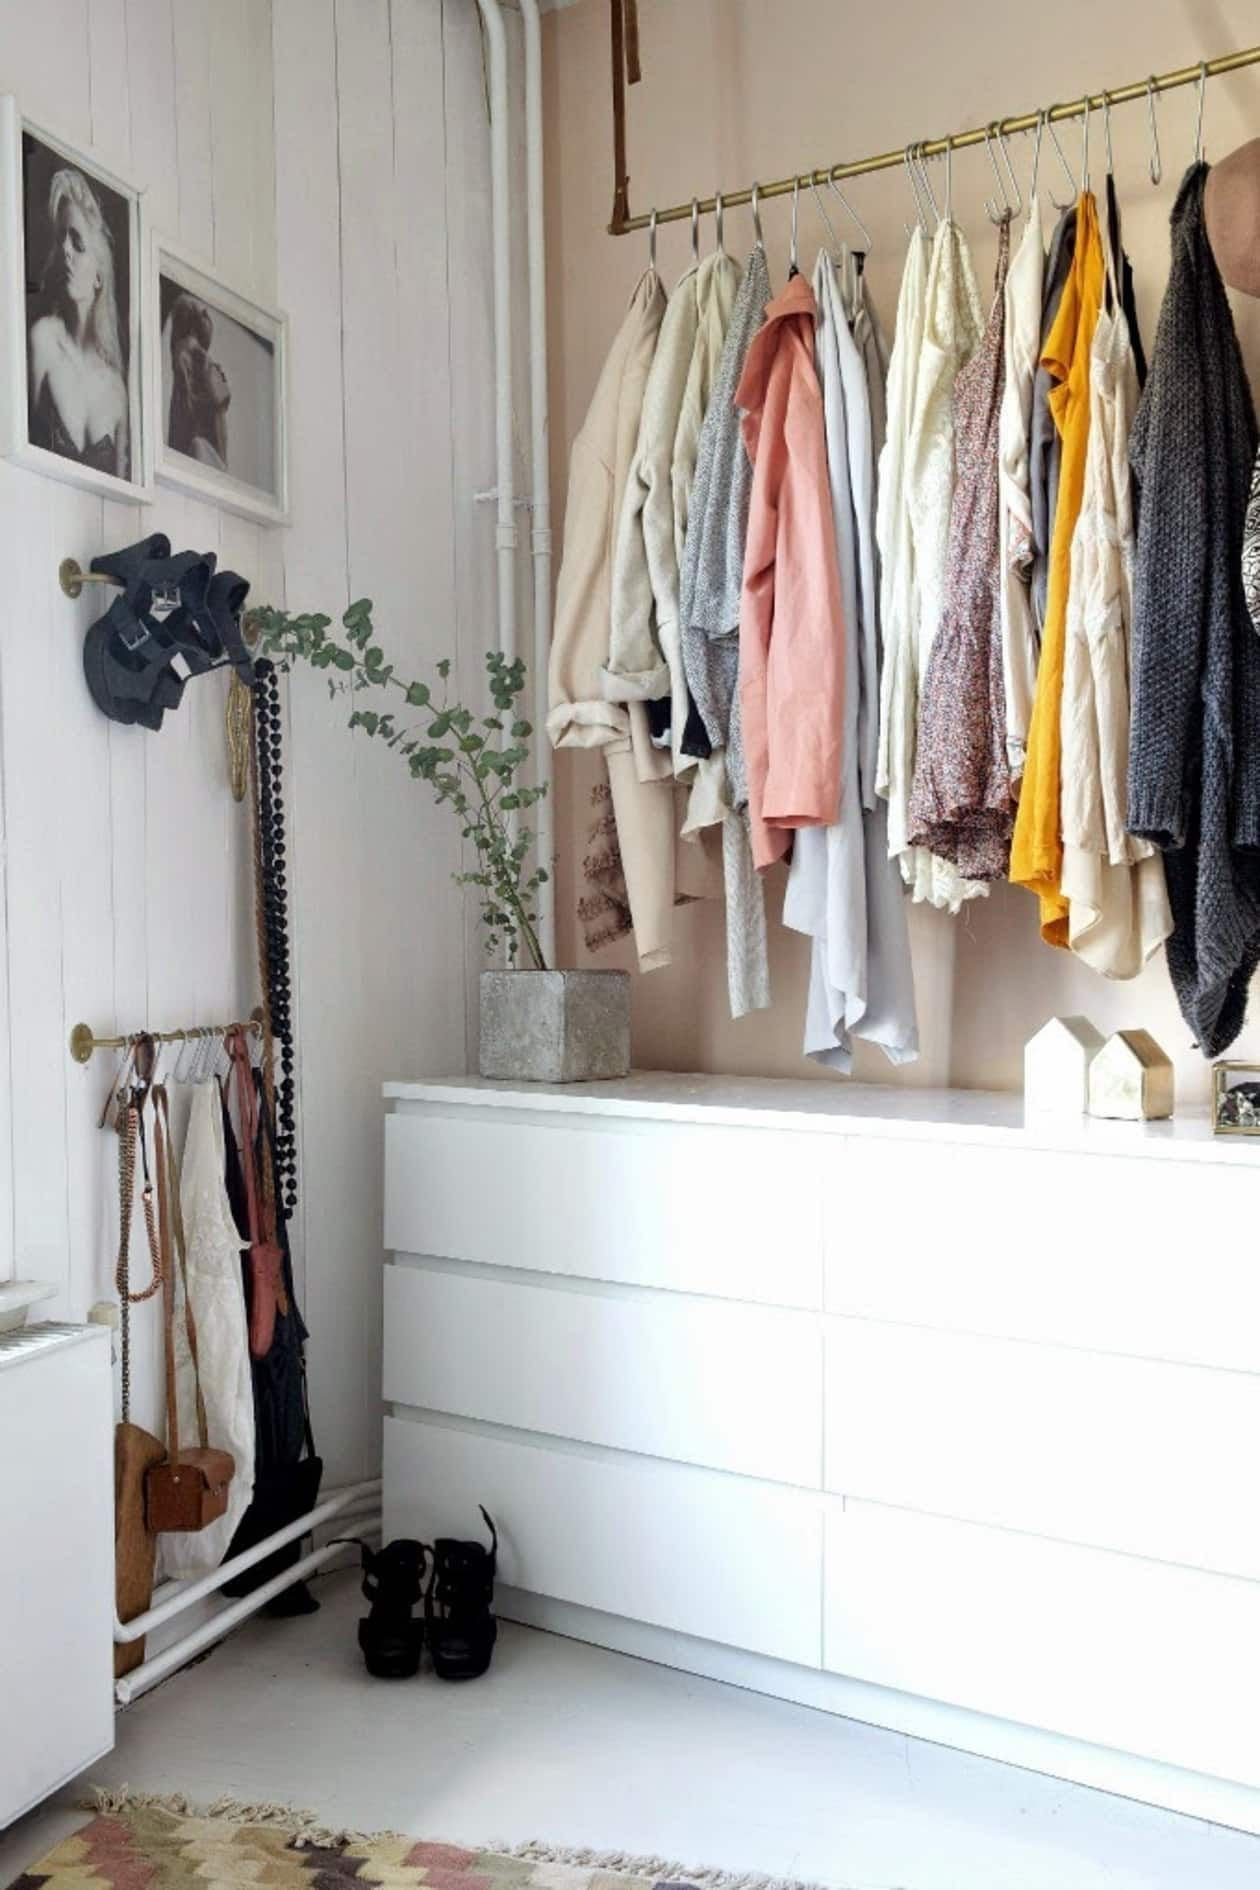 Clever Space Saving Solutions For Small Bedrooms Bedroom Storage